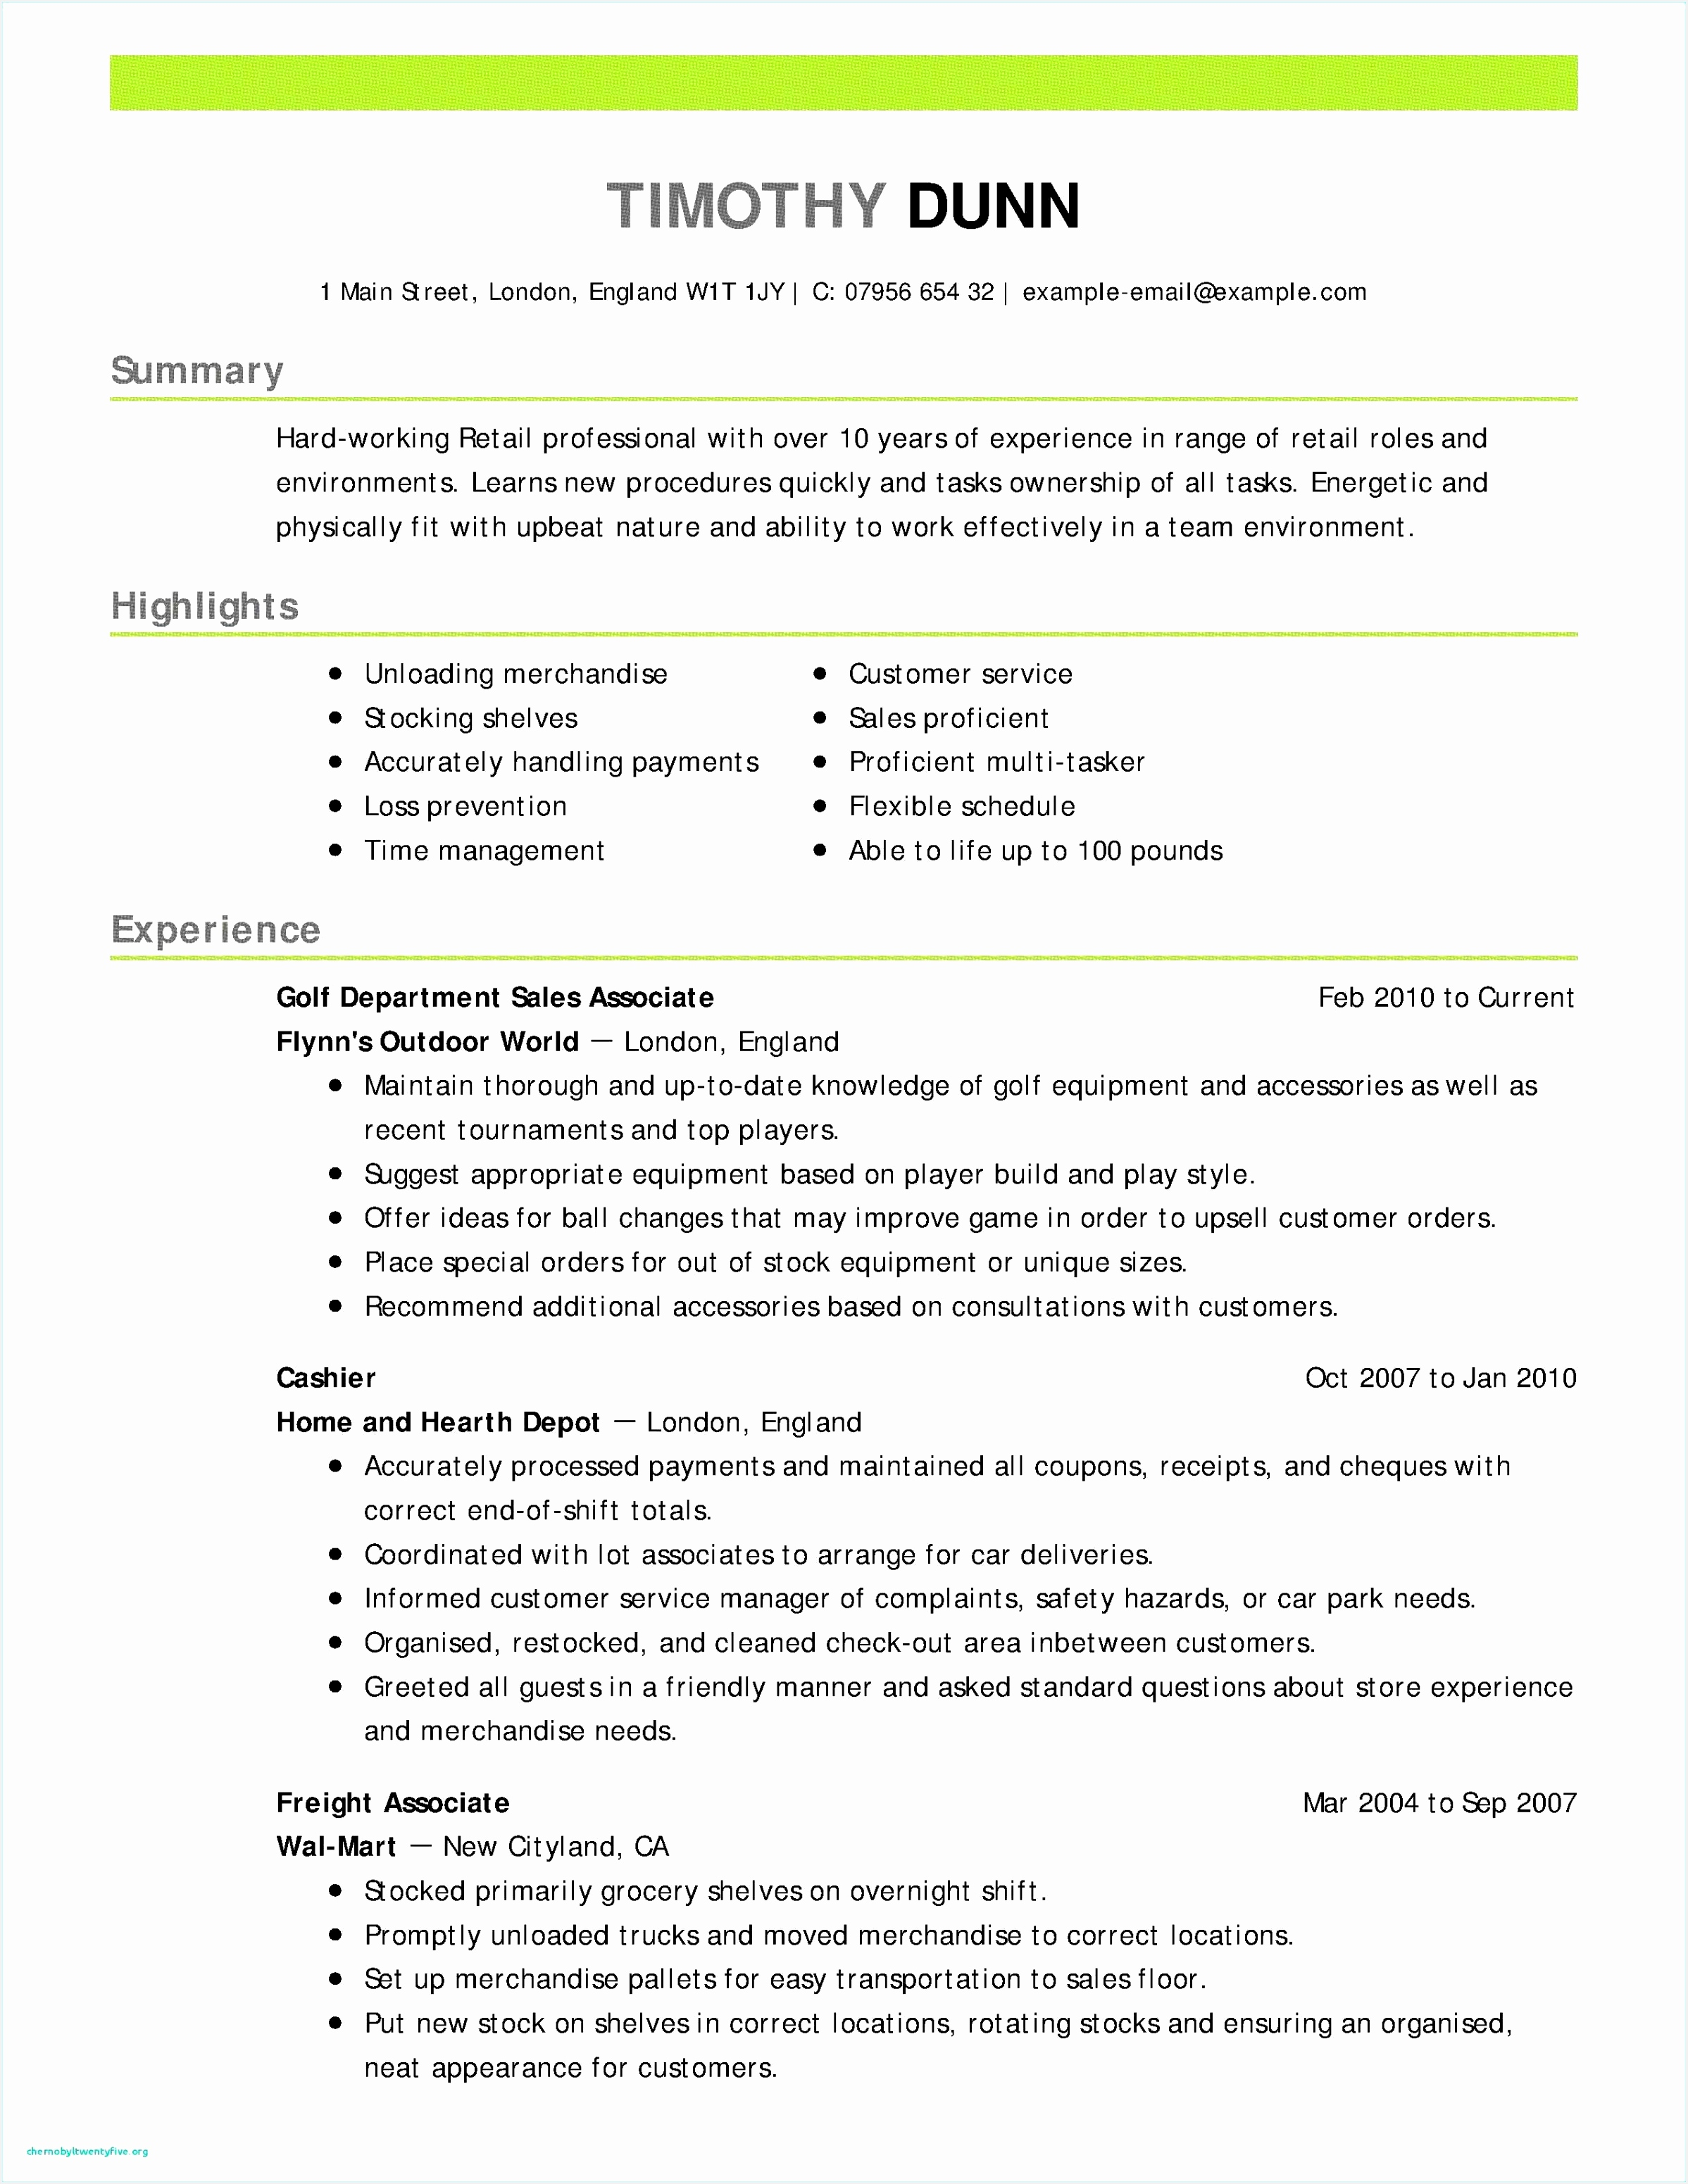 how to make a resume with imges sorority cover letter template examples of how to make a resume with imges 31022397dhqIu